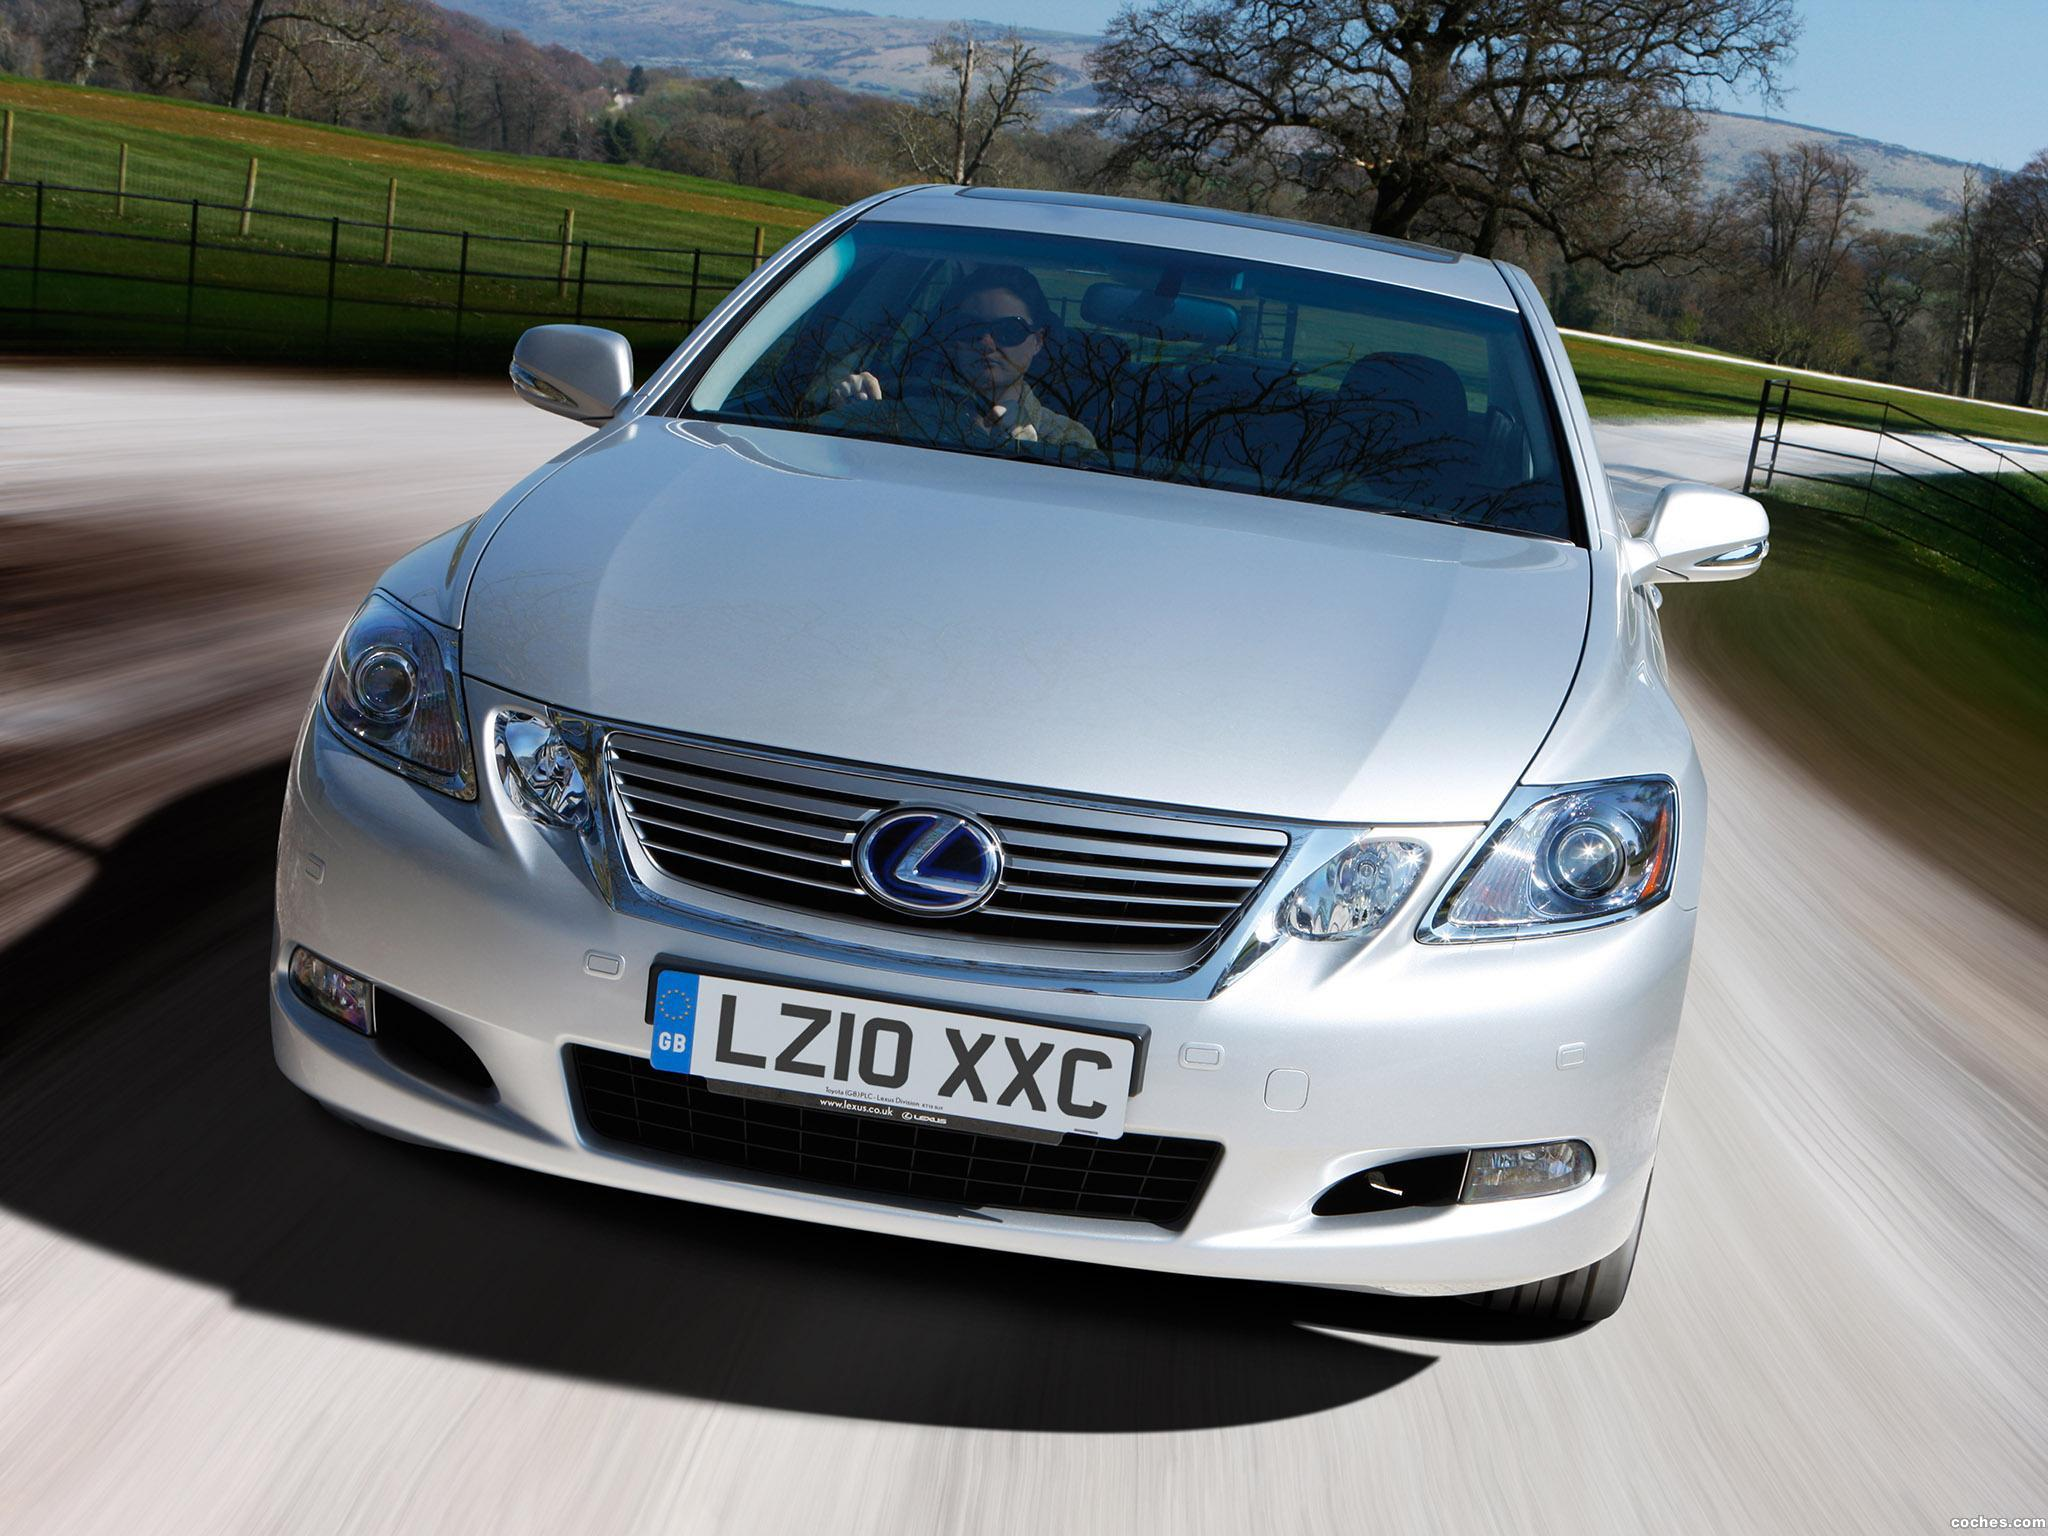 Foto 4 de Lexus GS 450h UK 2010